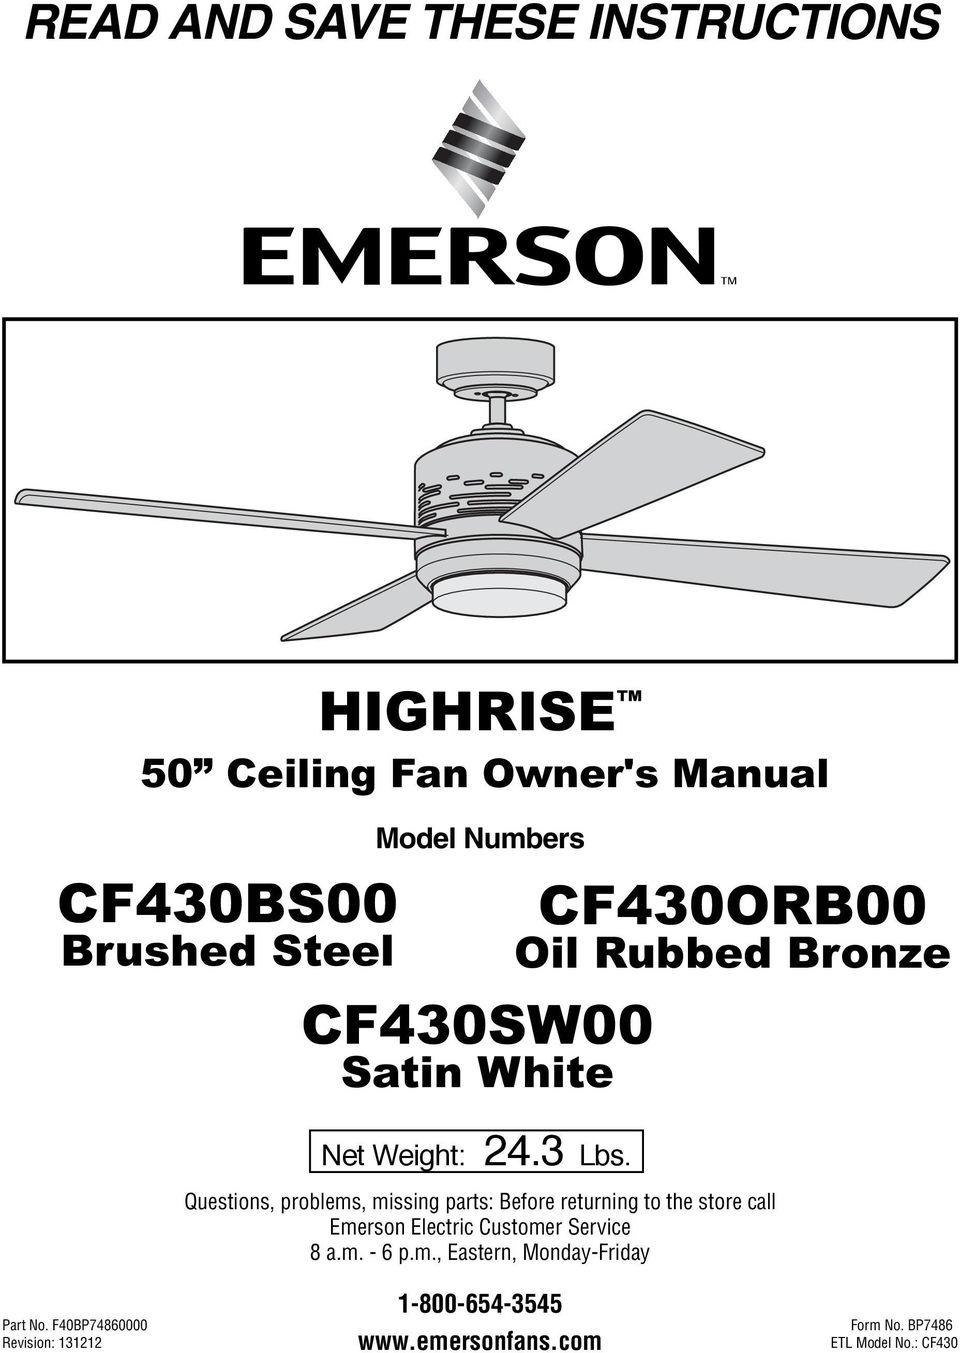 Read And Save These Instructions Highrise 50 Ceiling Fan Owners Thread Wiring A With Switch39s For Light Cf430orb00 Oil Rubbed Bronze Questions Problems Missing Parts Before Returning To The Store